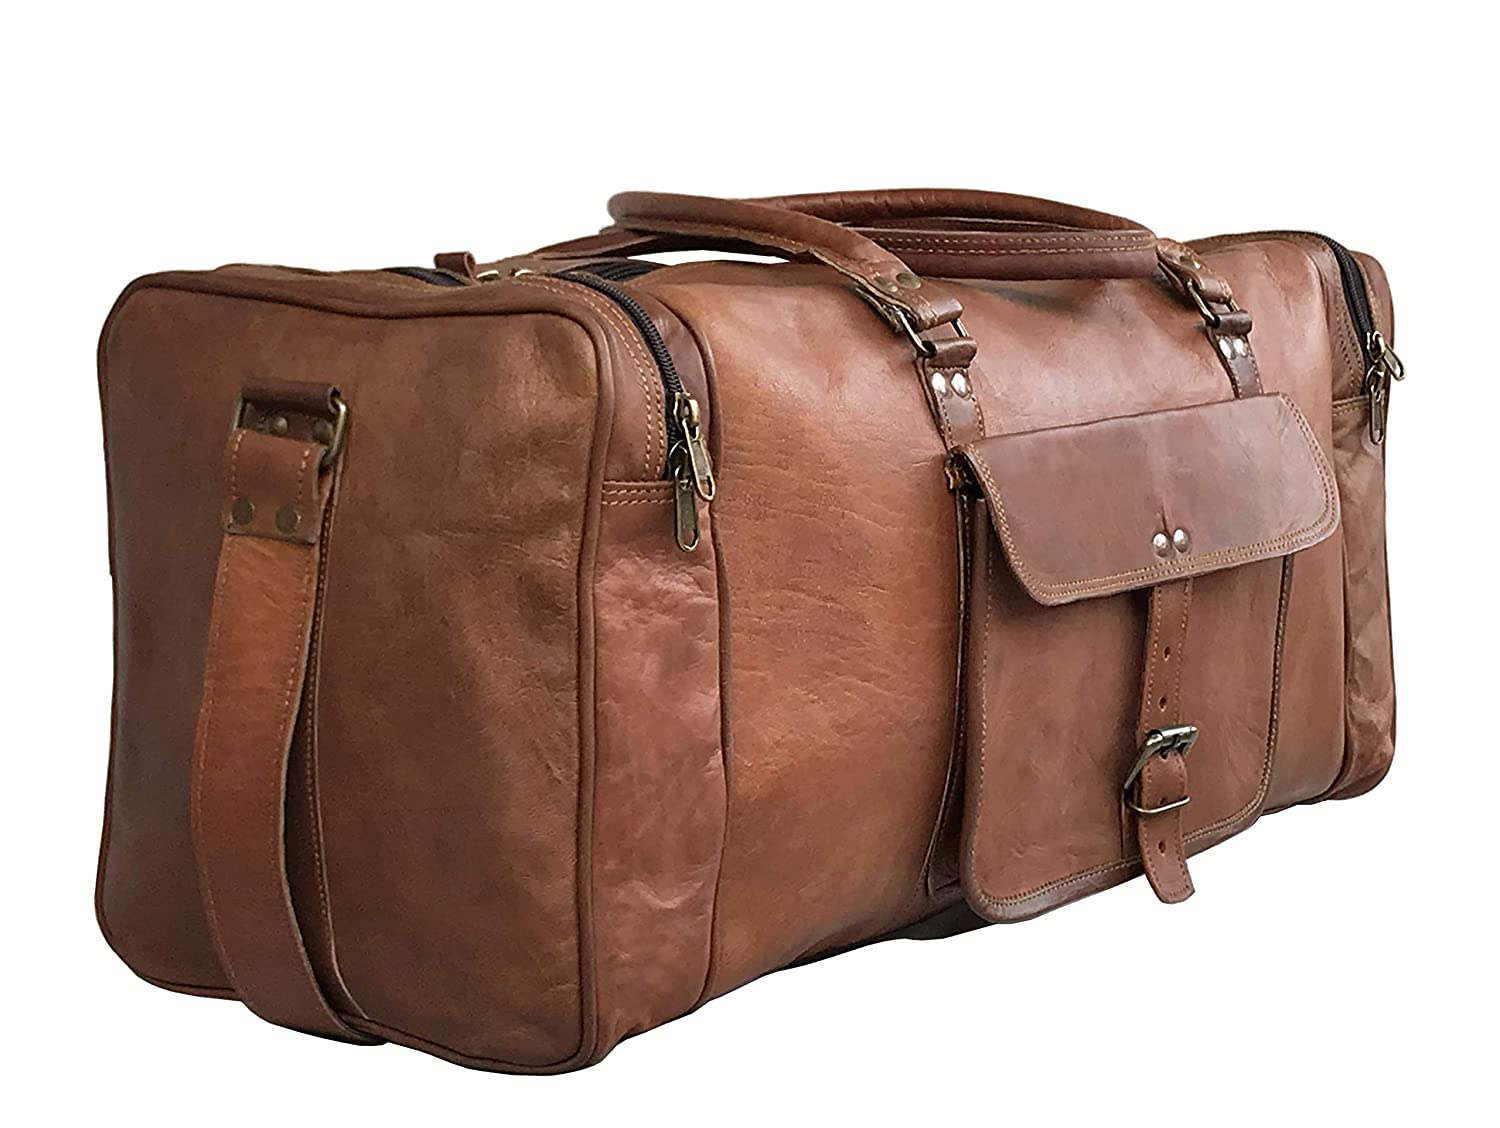 24 Inch Genuine Leather Duffel Travel Overnight Weekend Leather Bag Sports Gym Duffel for Men 25 inch